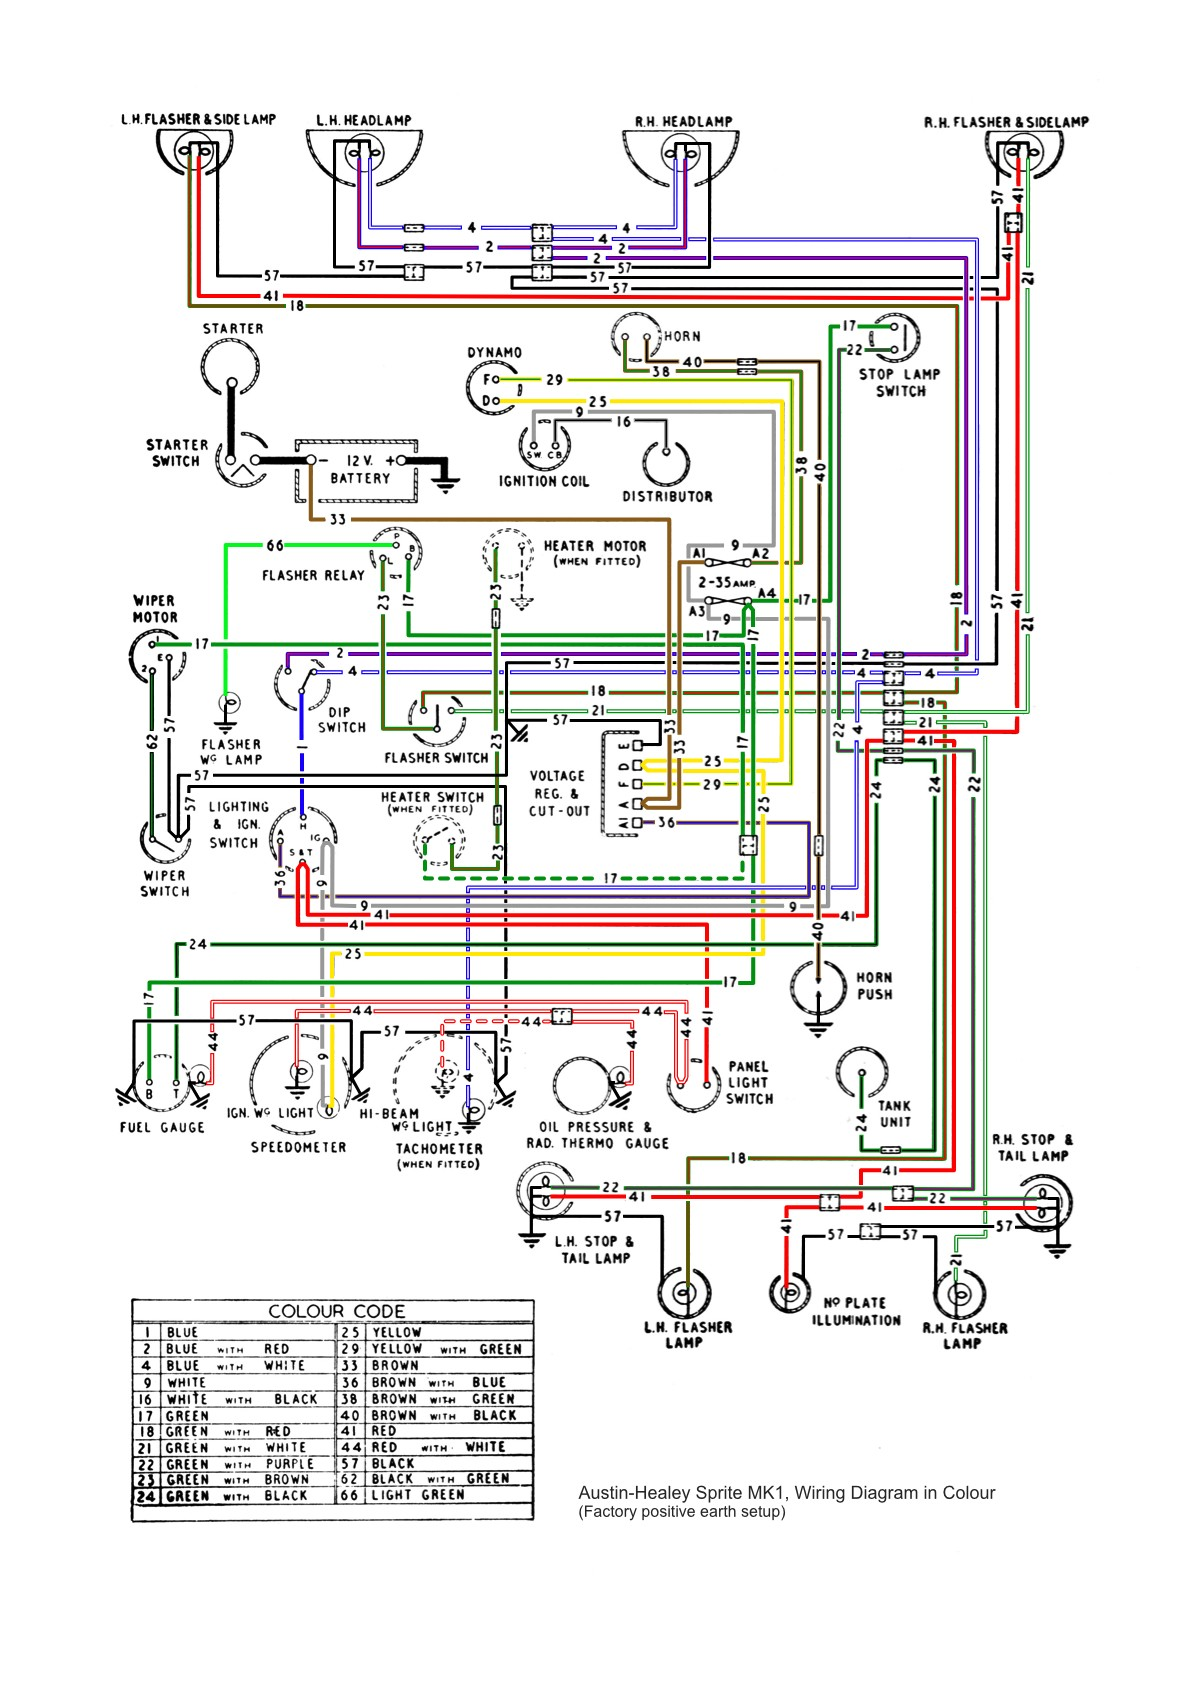 Wiring Diagram for Bad Boy Buggy Wiring Harness Dash Routing Mgb Gt Of Wiring Diagram for Bad Boy Buggy